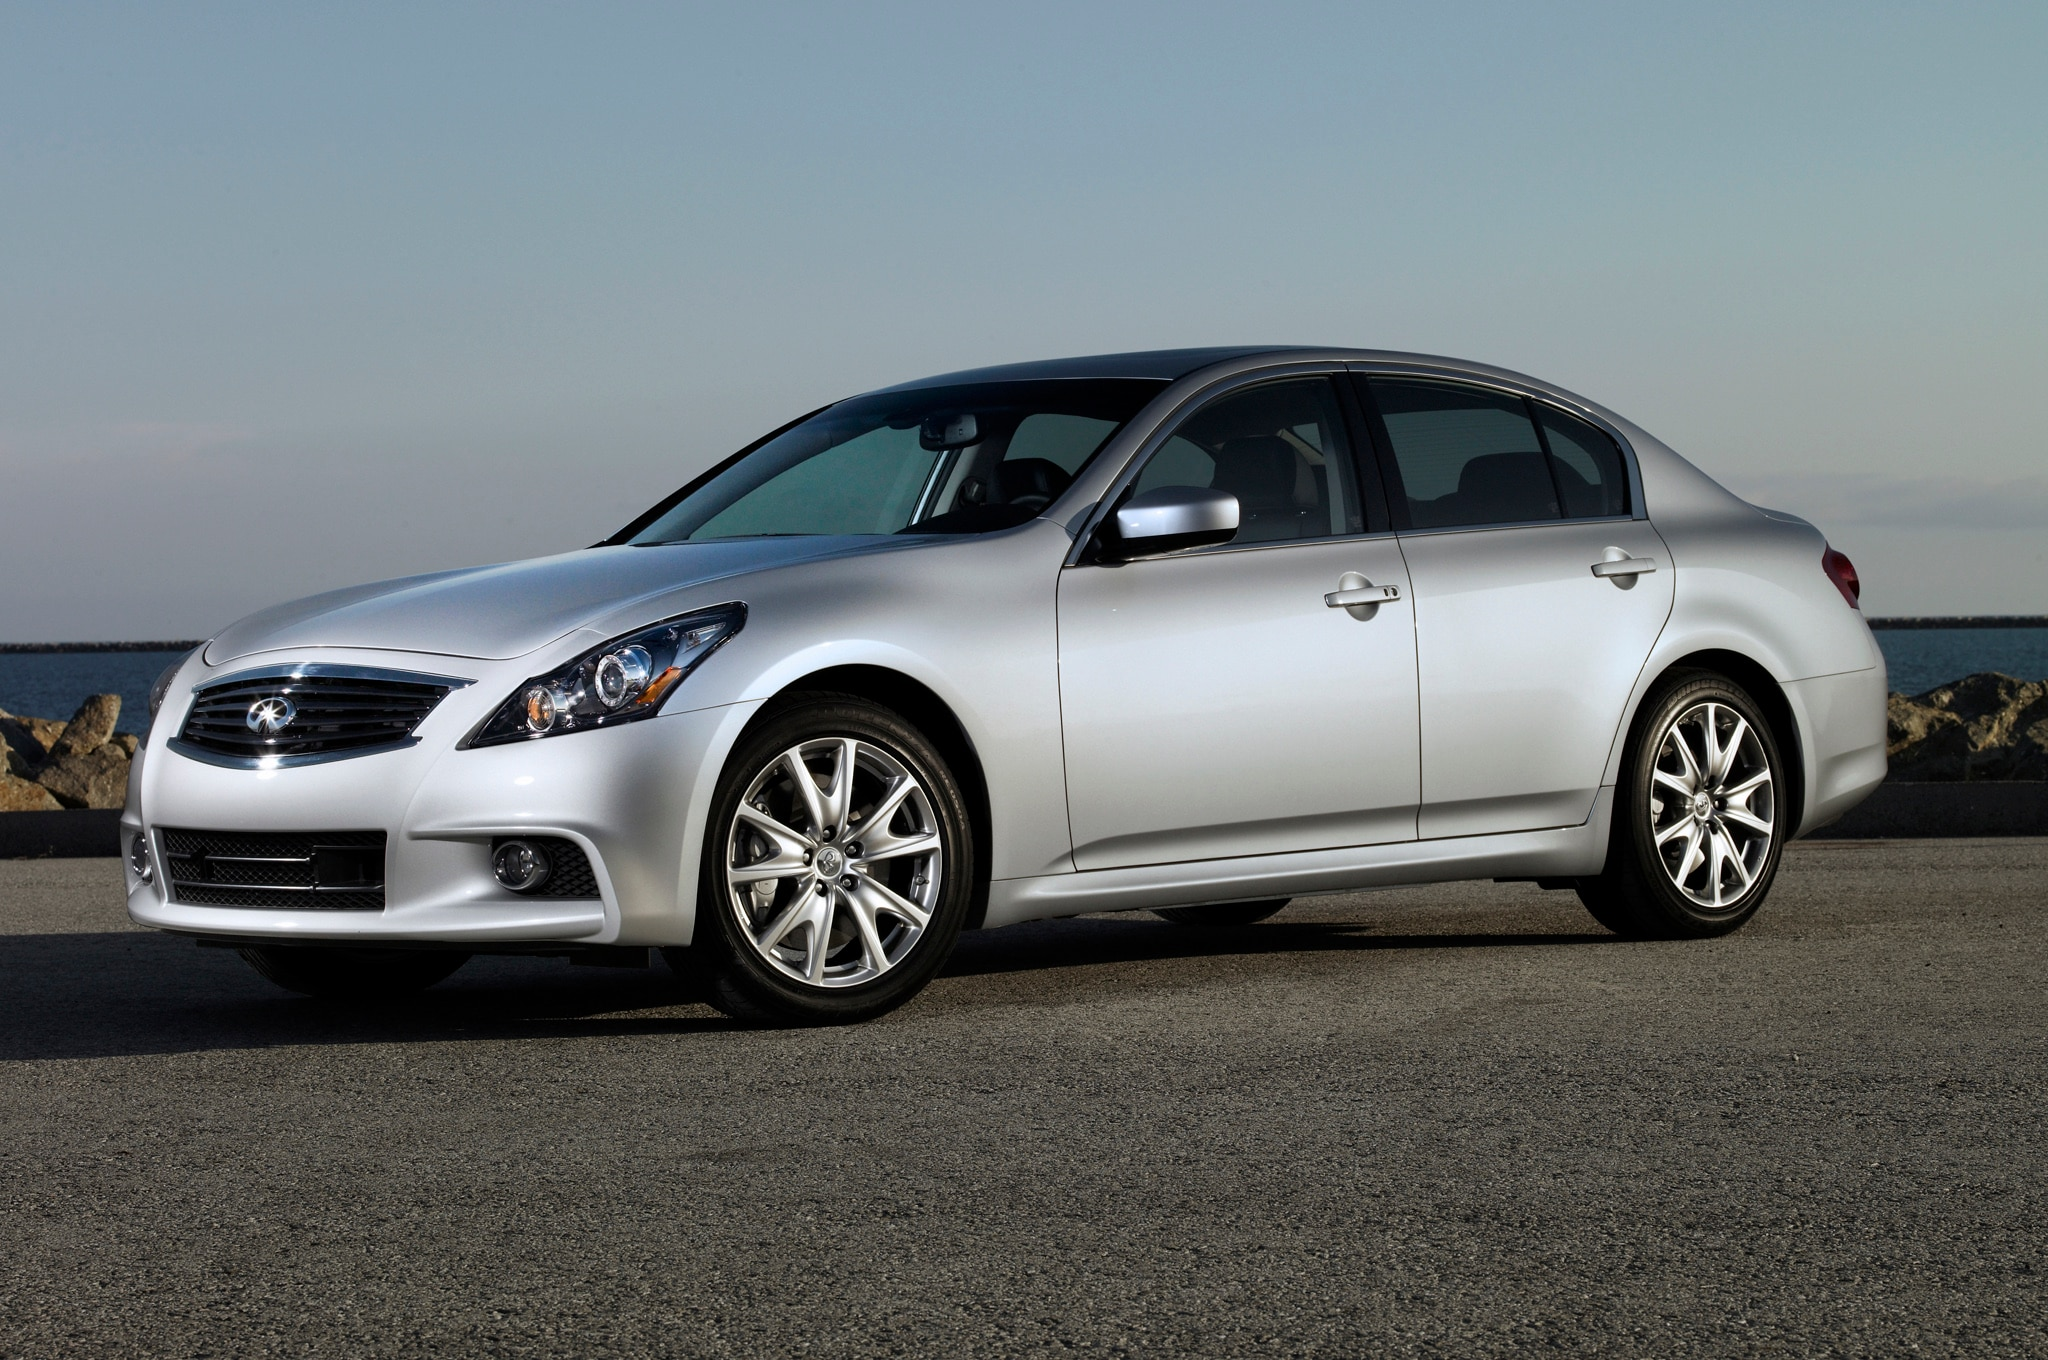 2013 Infiniti G37 Front Three Quarters 31